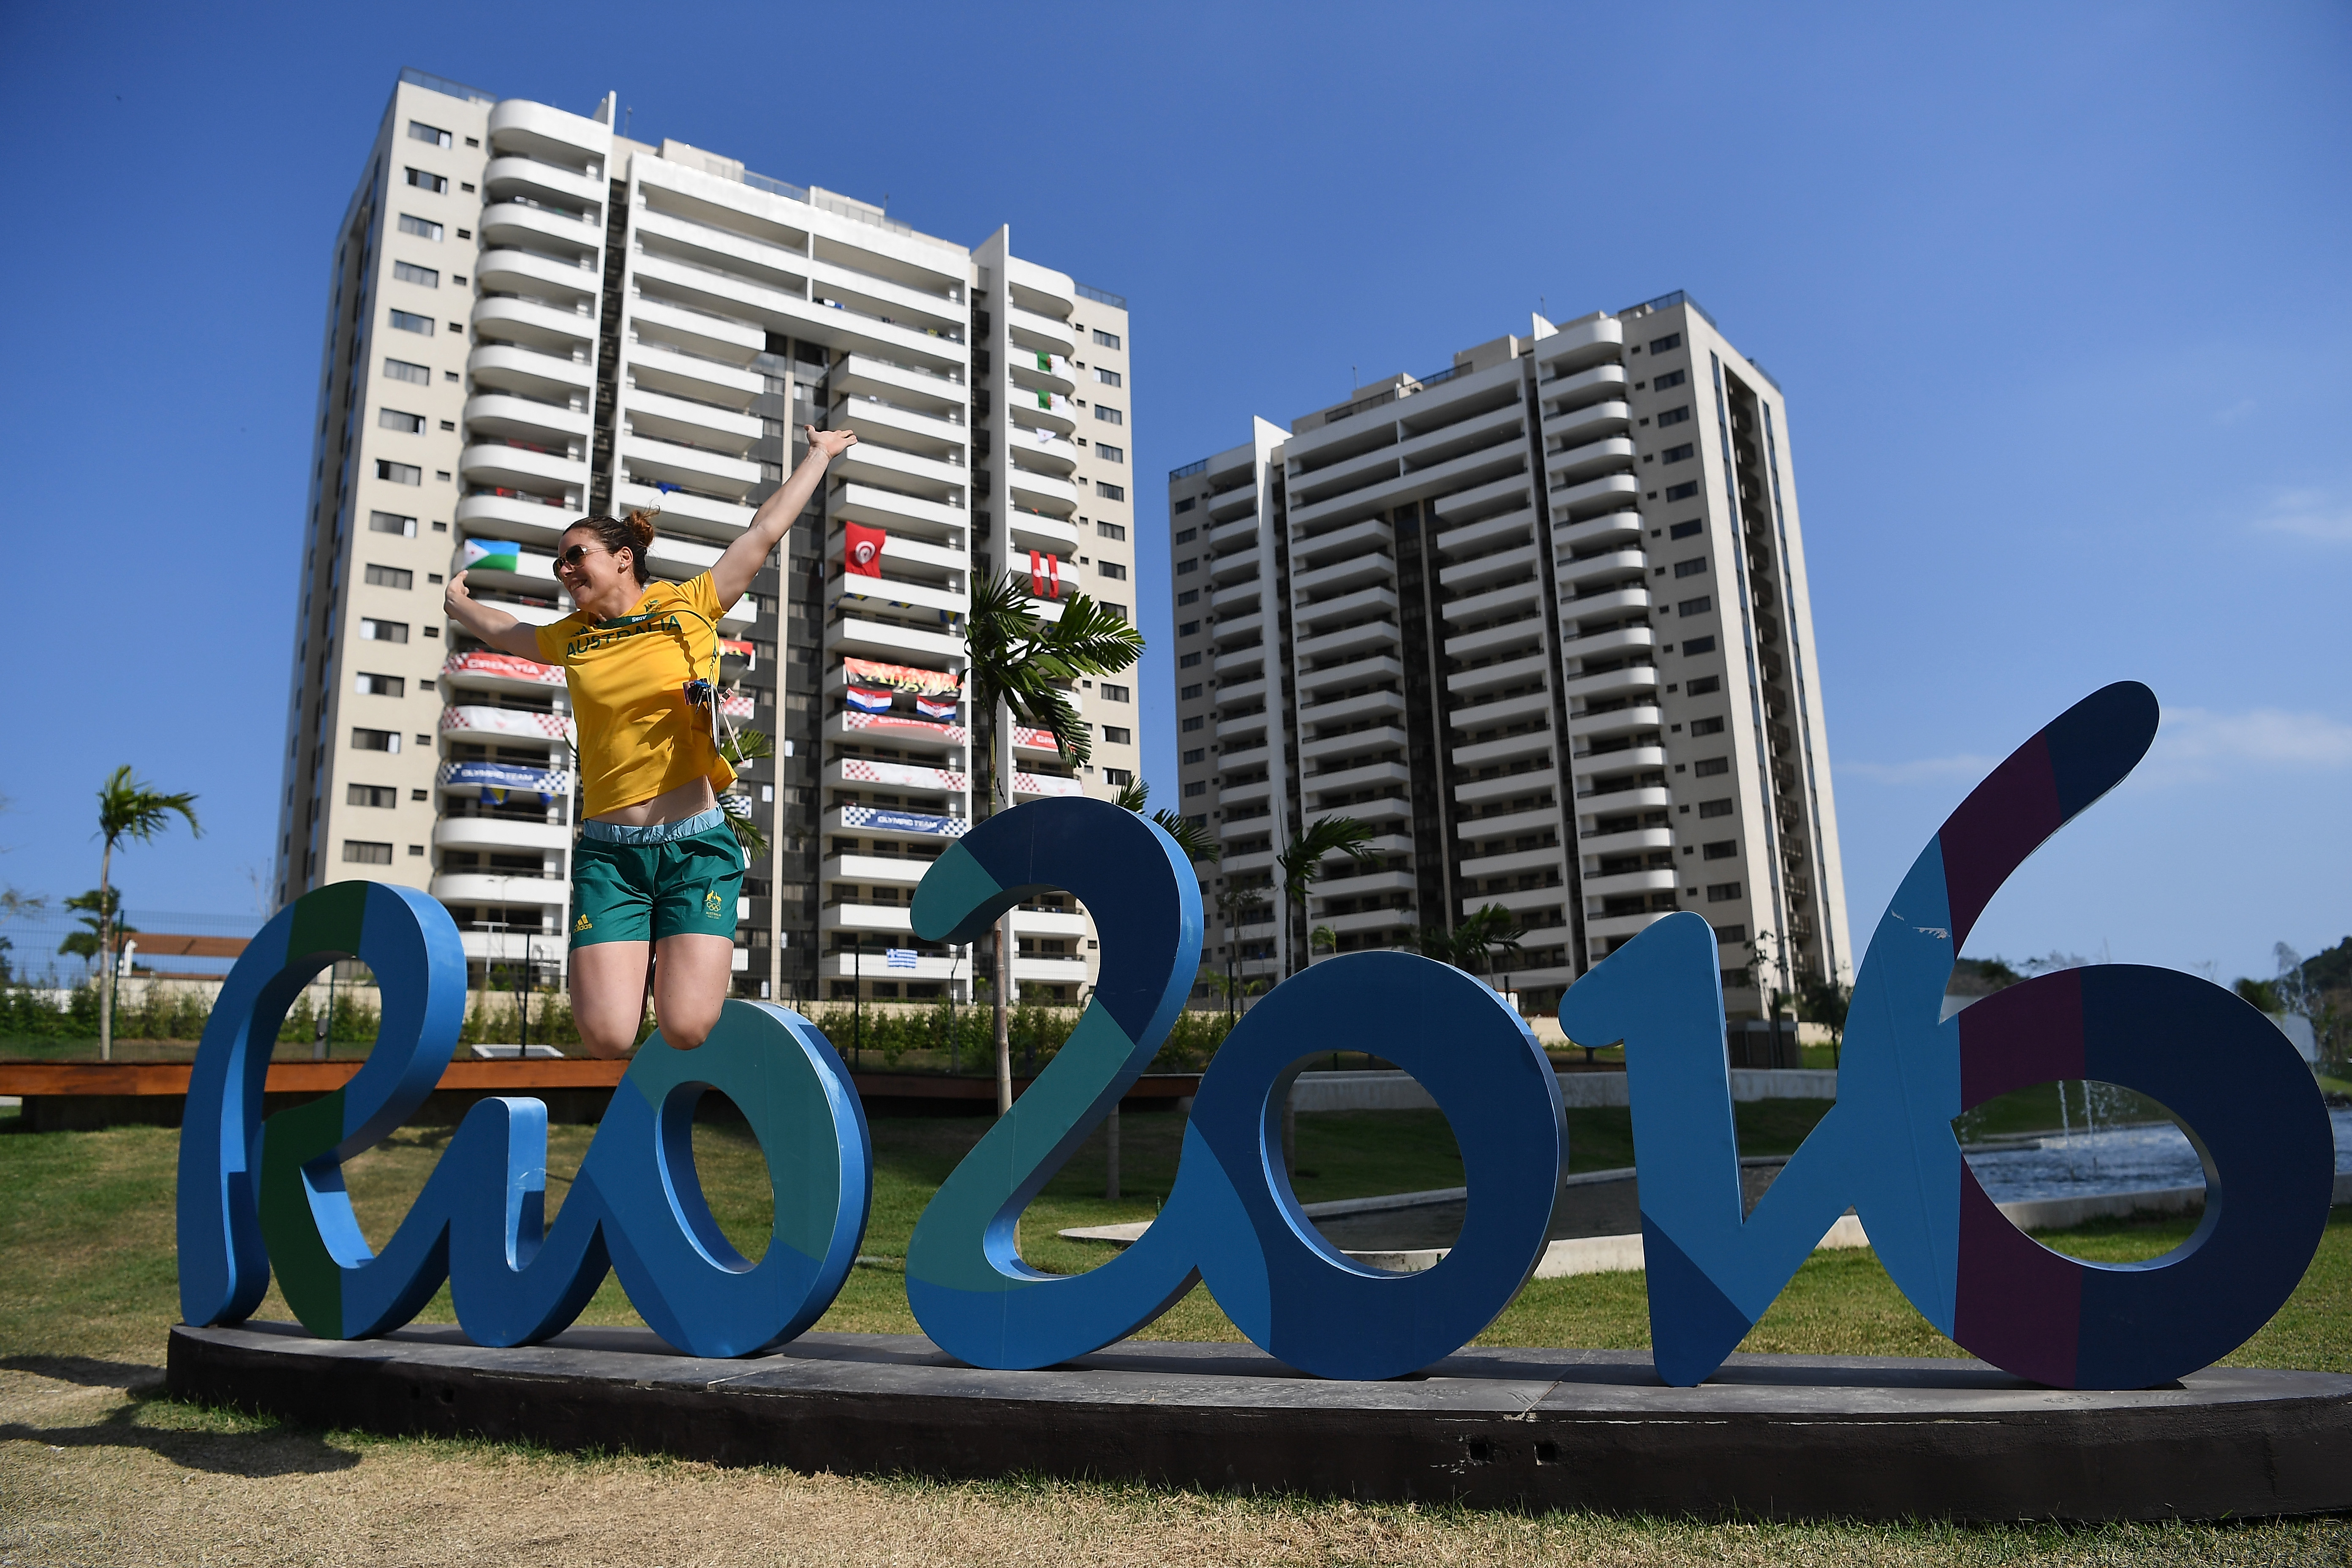 RIO DE JANEIRO, BRAZIL - AUGUST 04: Athlete of the Australia team Rio 2016 Olympic games, Carry McMahon is seen in the Athletes village on August 4, 2016 in Rio de Janeiro, Brazil. (Photo by Pascal Le Segretain/Getty Images)